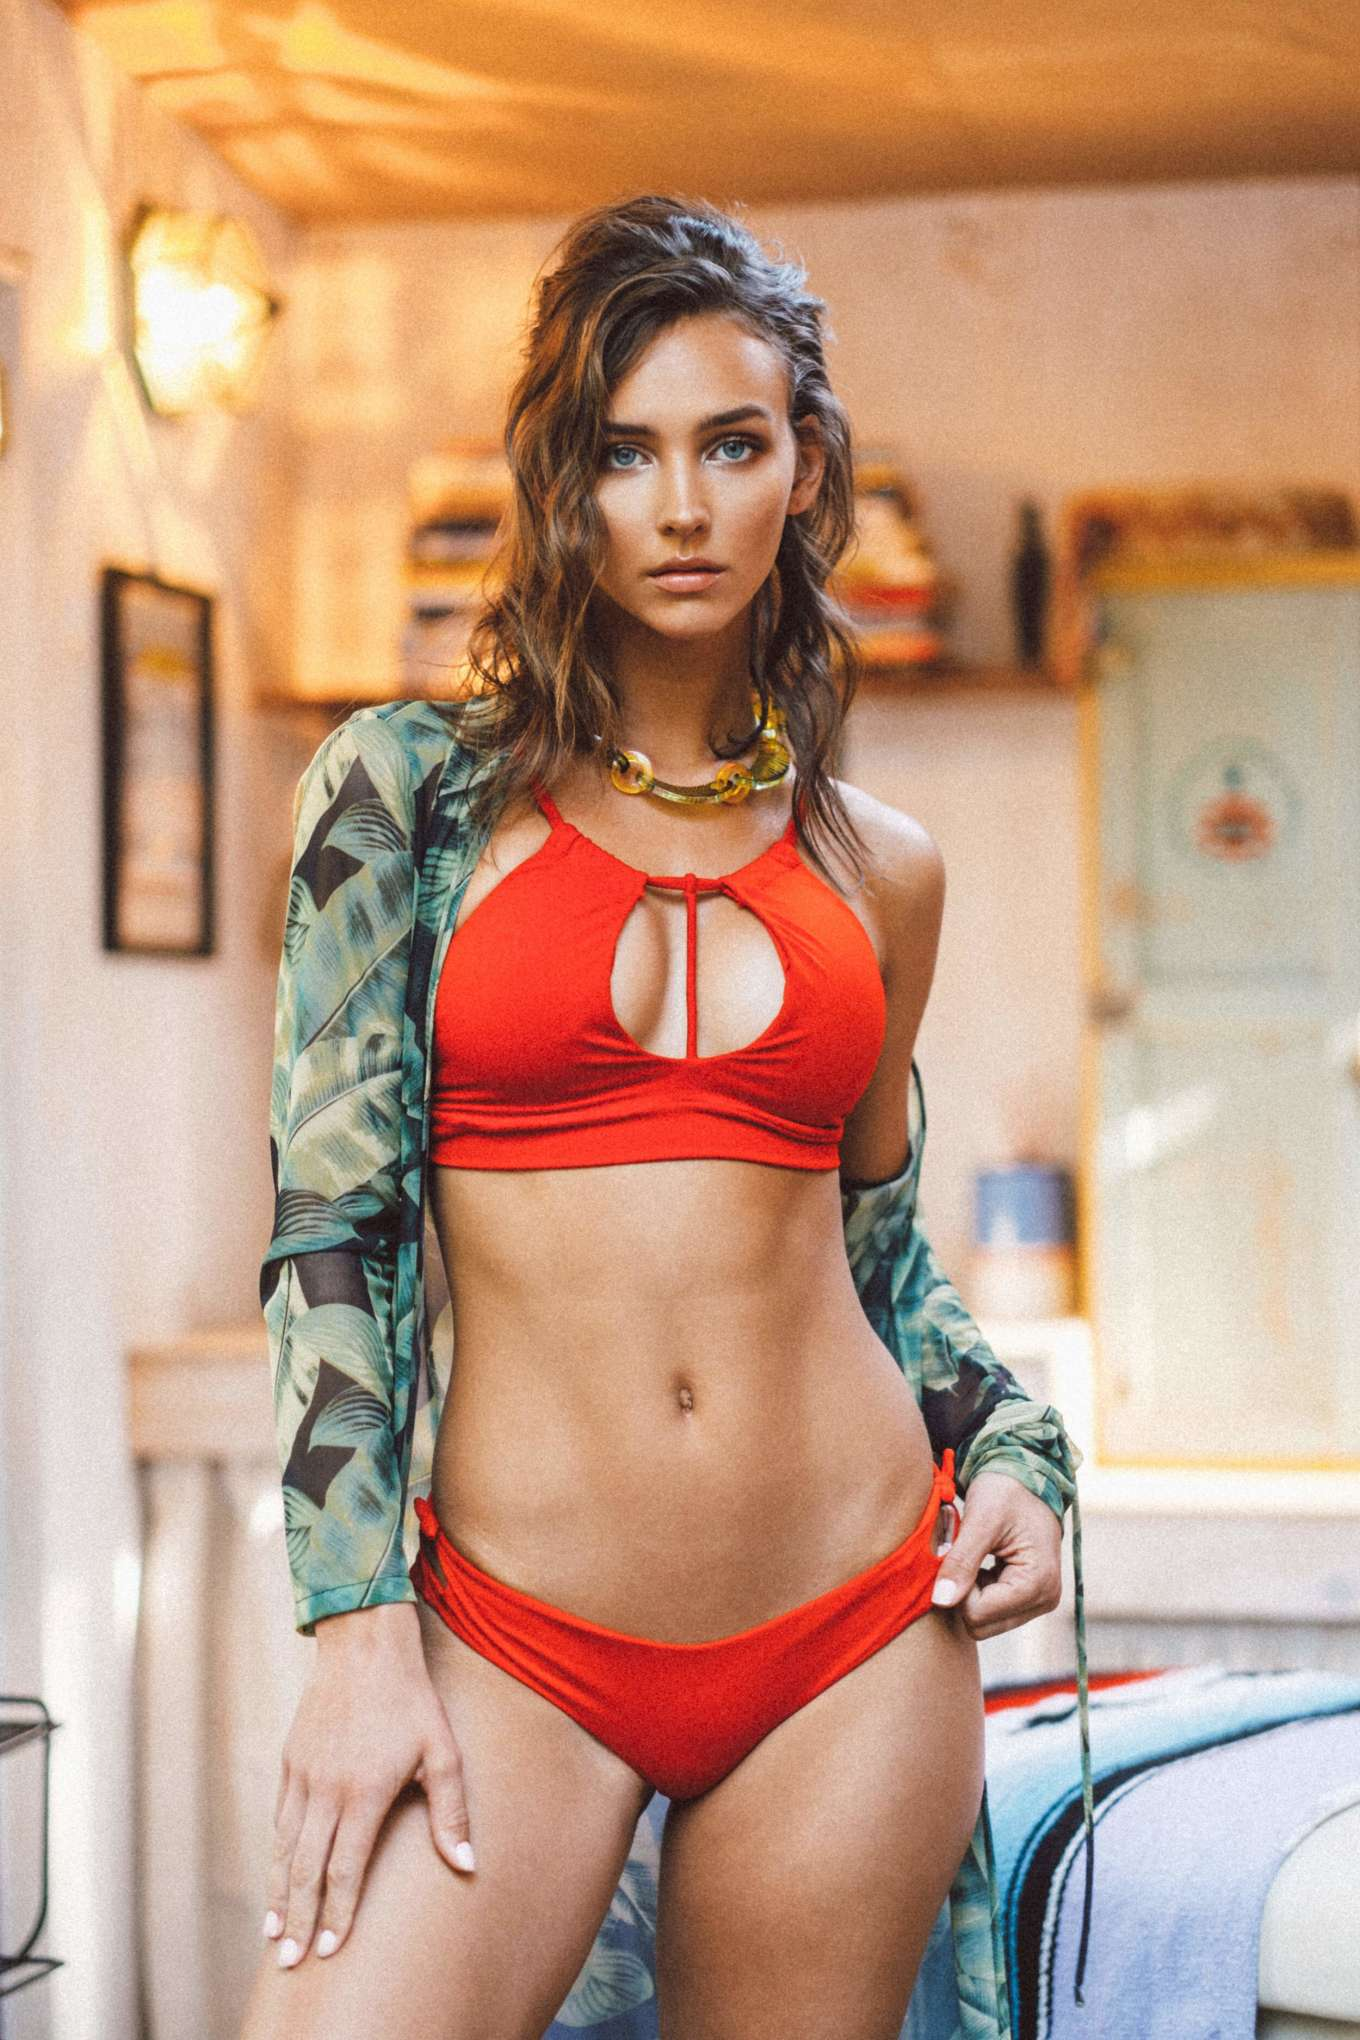 Rachel Cook by Jon Batario Photoshoot 2019